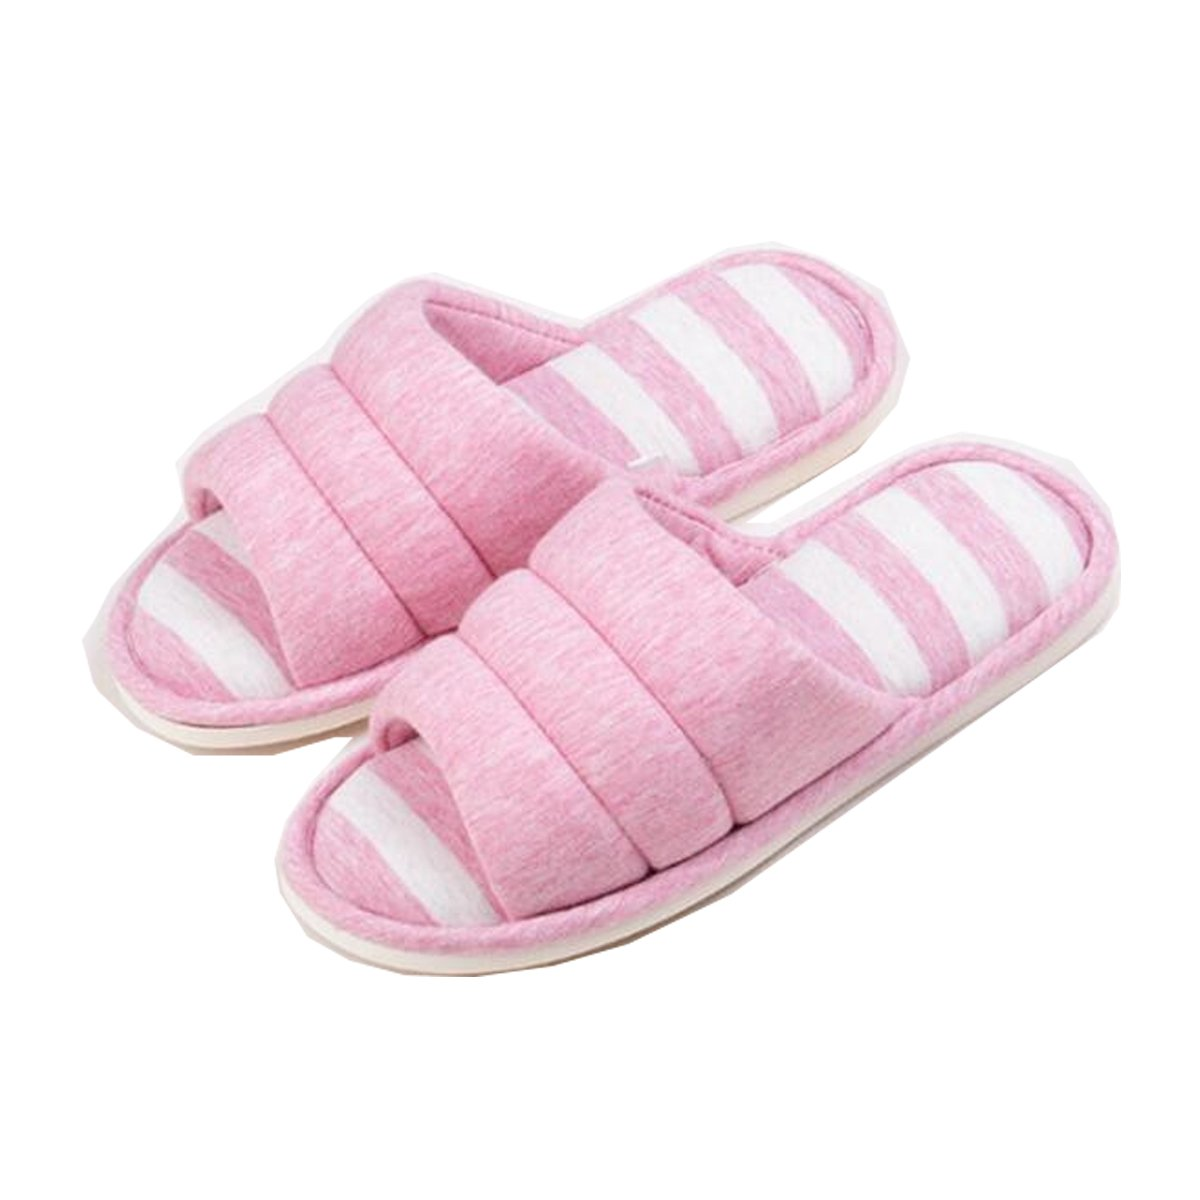 Sakuracan Women/Men Cozy Home Slippers Open Toe Cotton Memory Foam Slip on Indoor Outdoor Lightweight Home Shoes